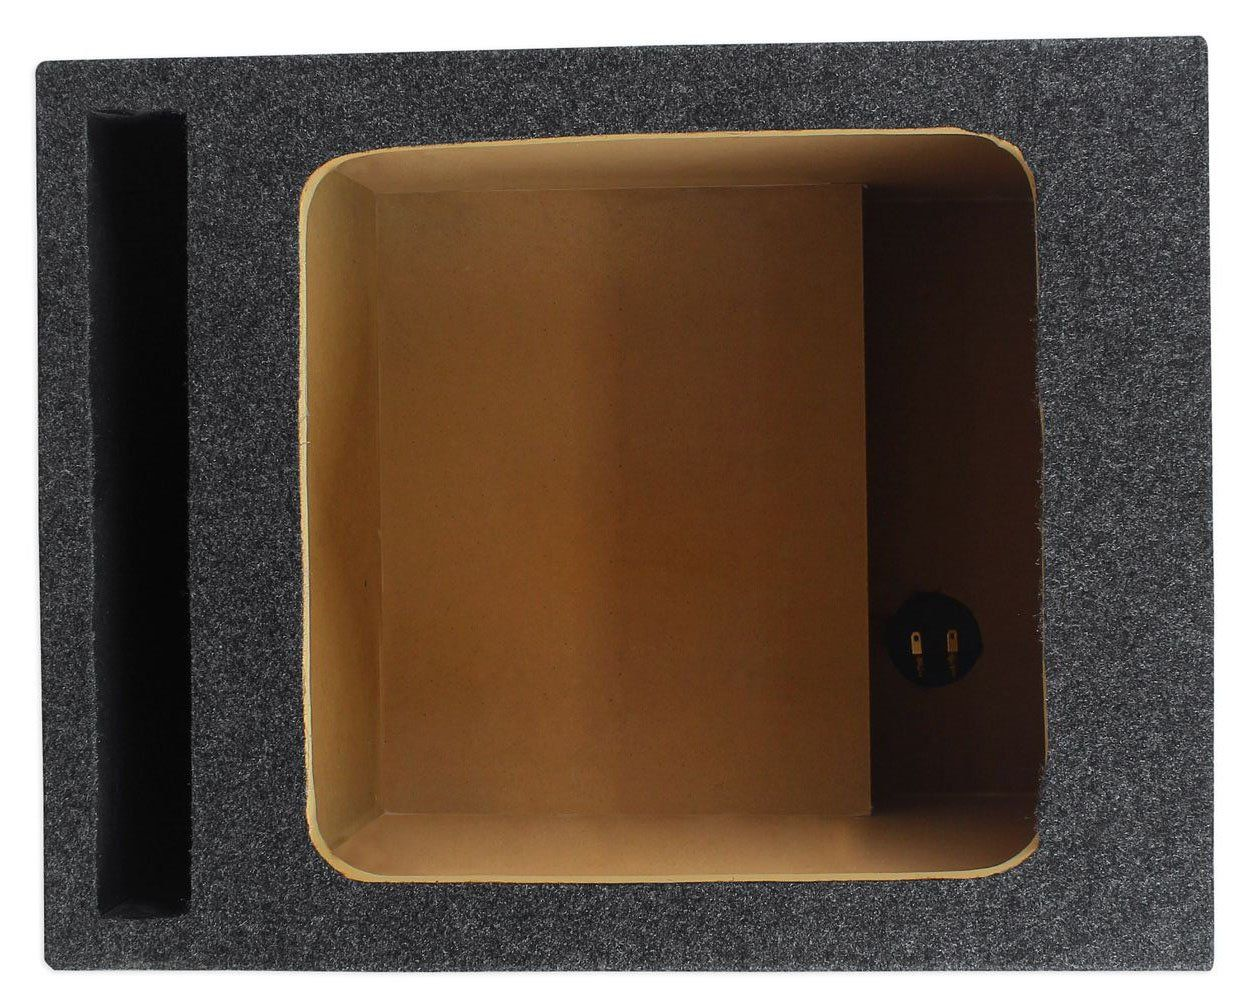 rockville rsvk single vented square subwoofer enclosure check out the product reviews around rockville single vented square subwoofer enclosure designed for square subs such as the kicker solo series made in